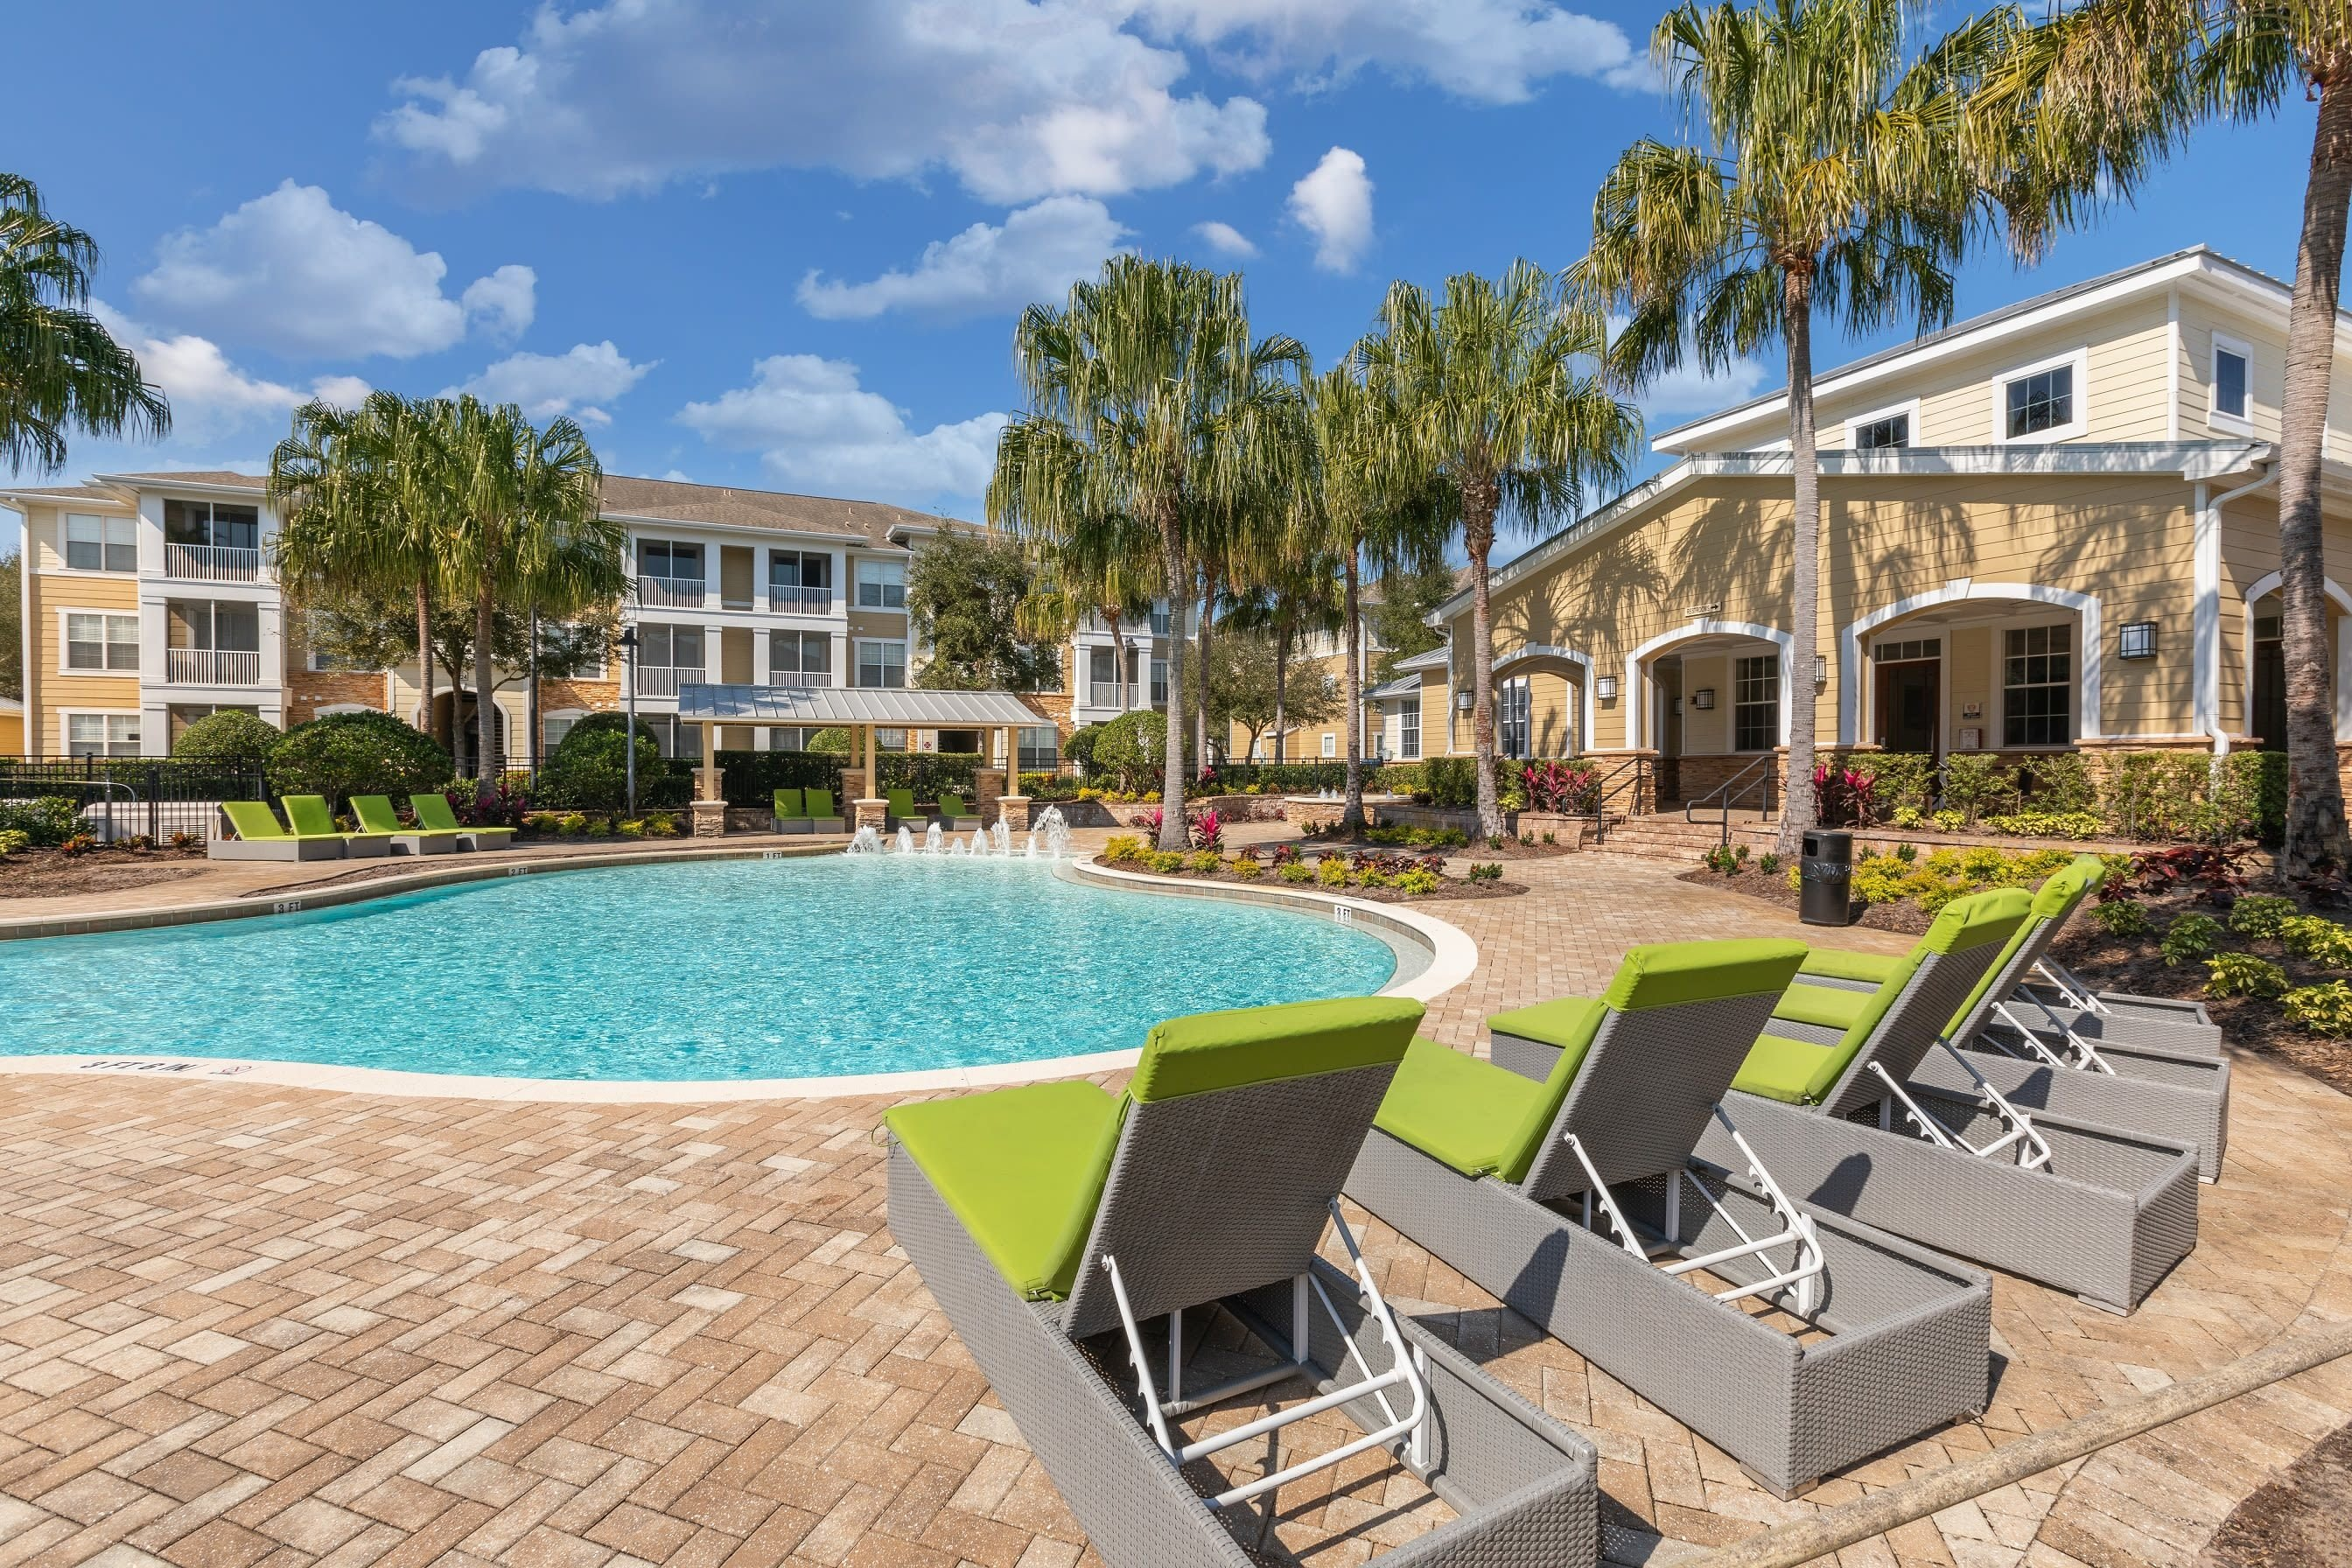 Best Luxury 1 2 3 Bedroom Apartments In Tampa Fl With Pictures Original 1024 x 768